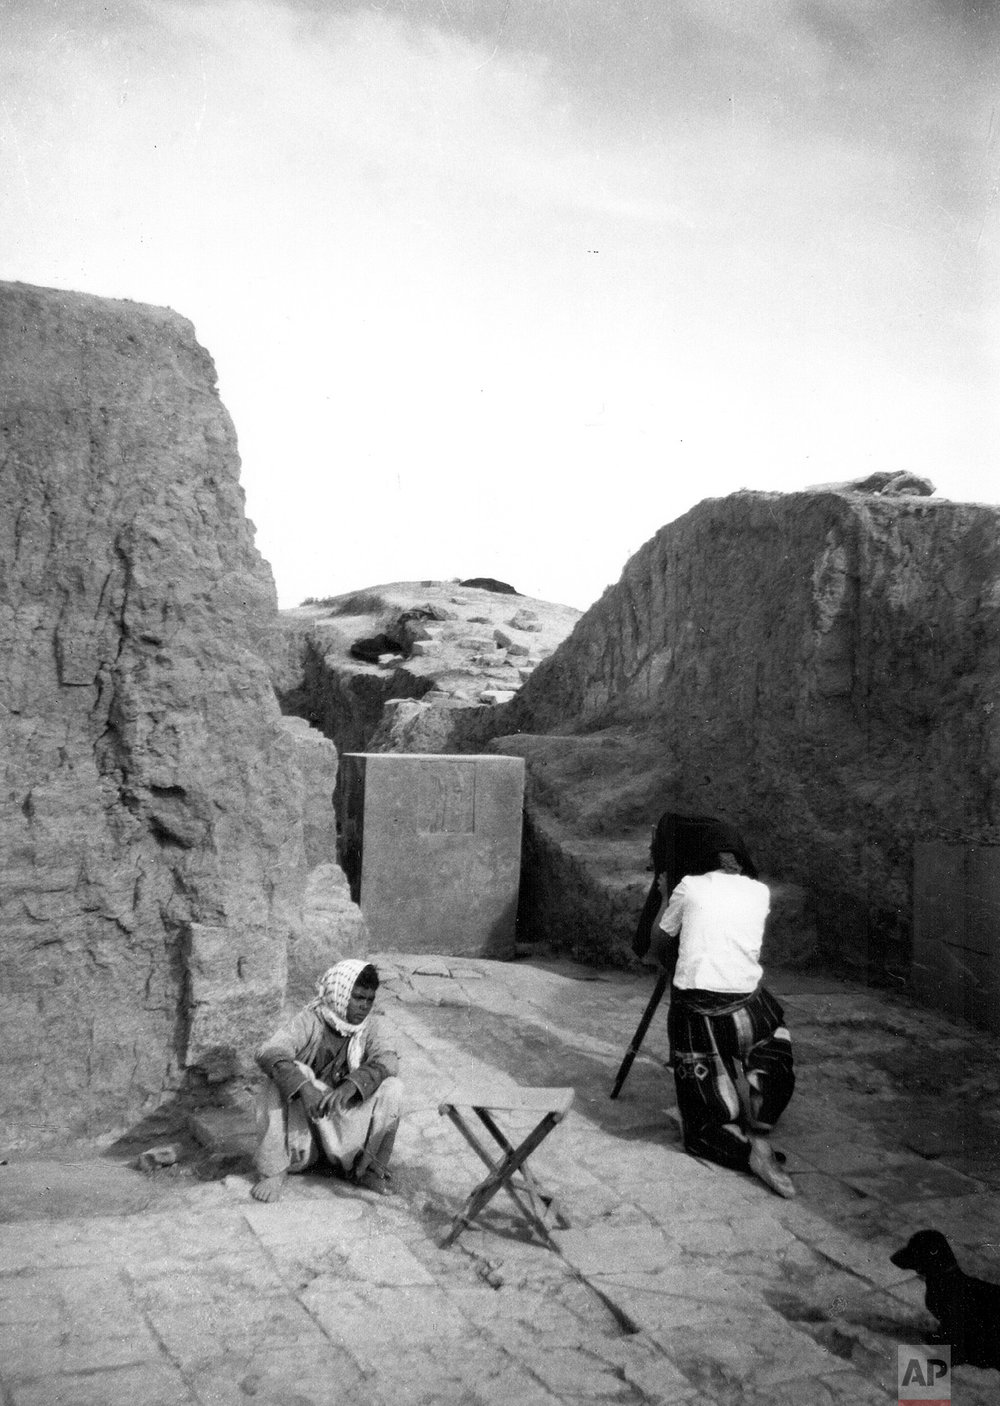 Barbara Parker taking a photograph at Nimrud